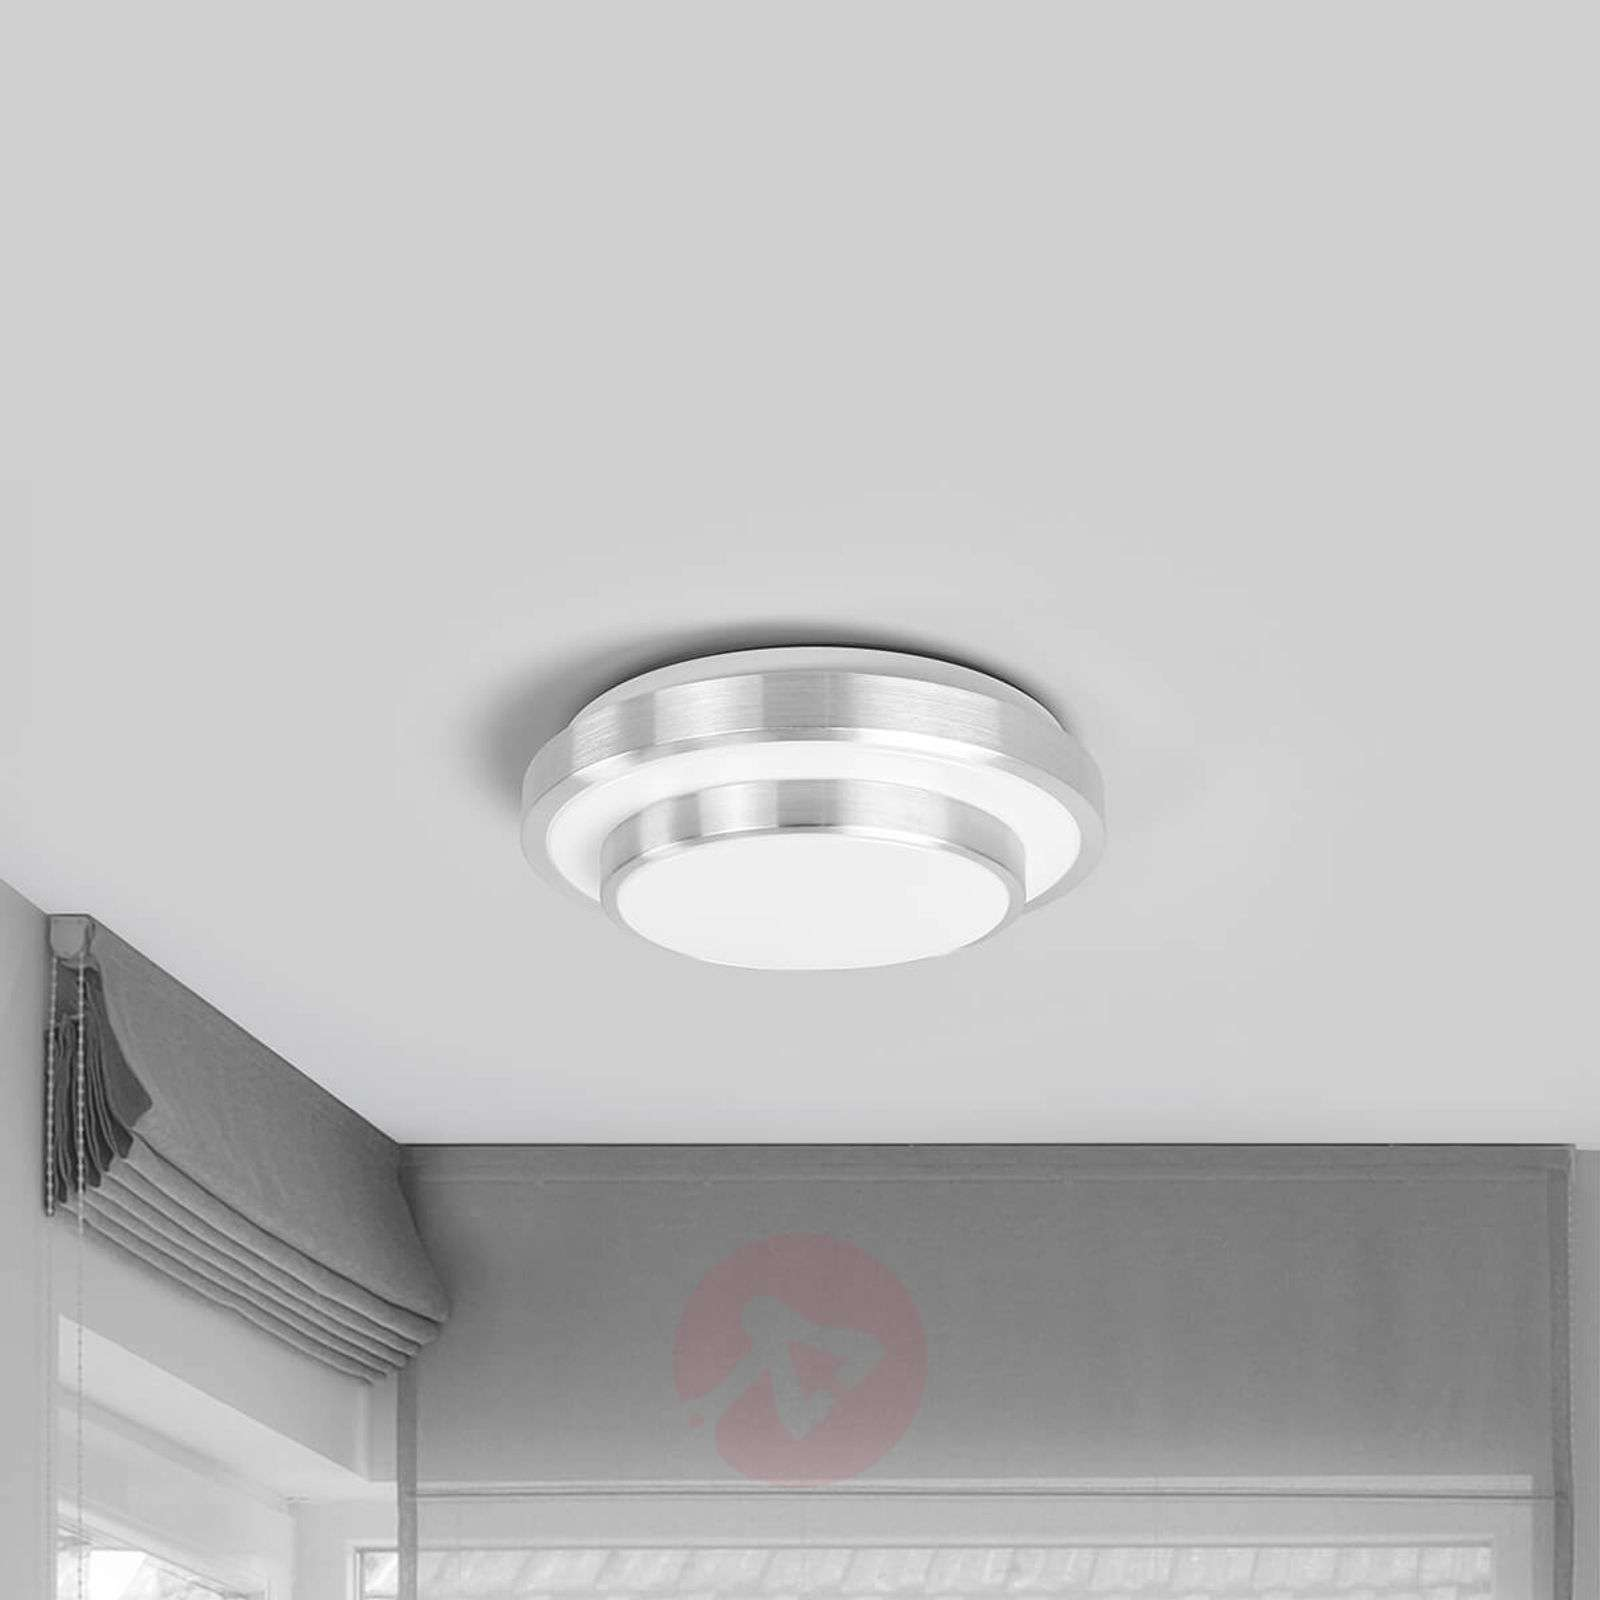 Huberta - round LED ceiling lamp, aluminium frame | Lights.ie